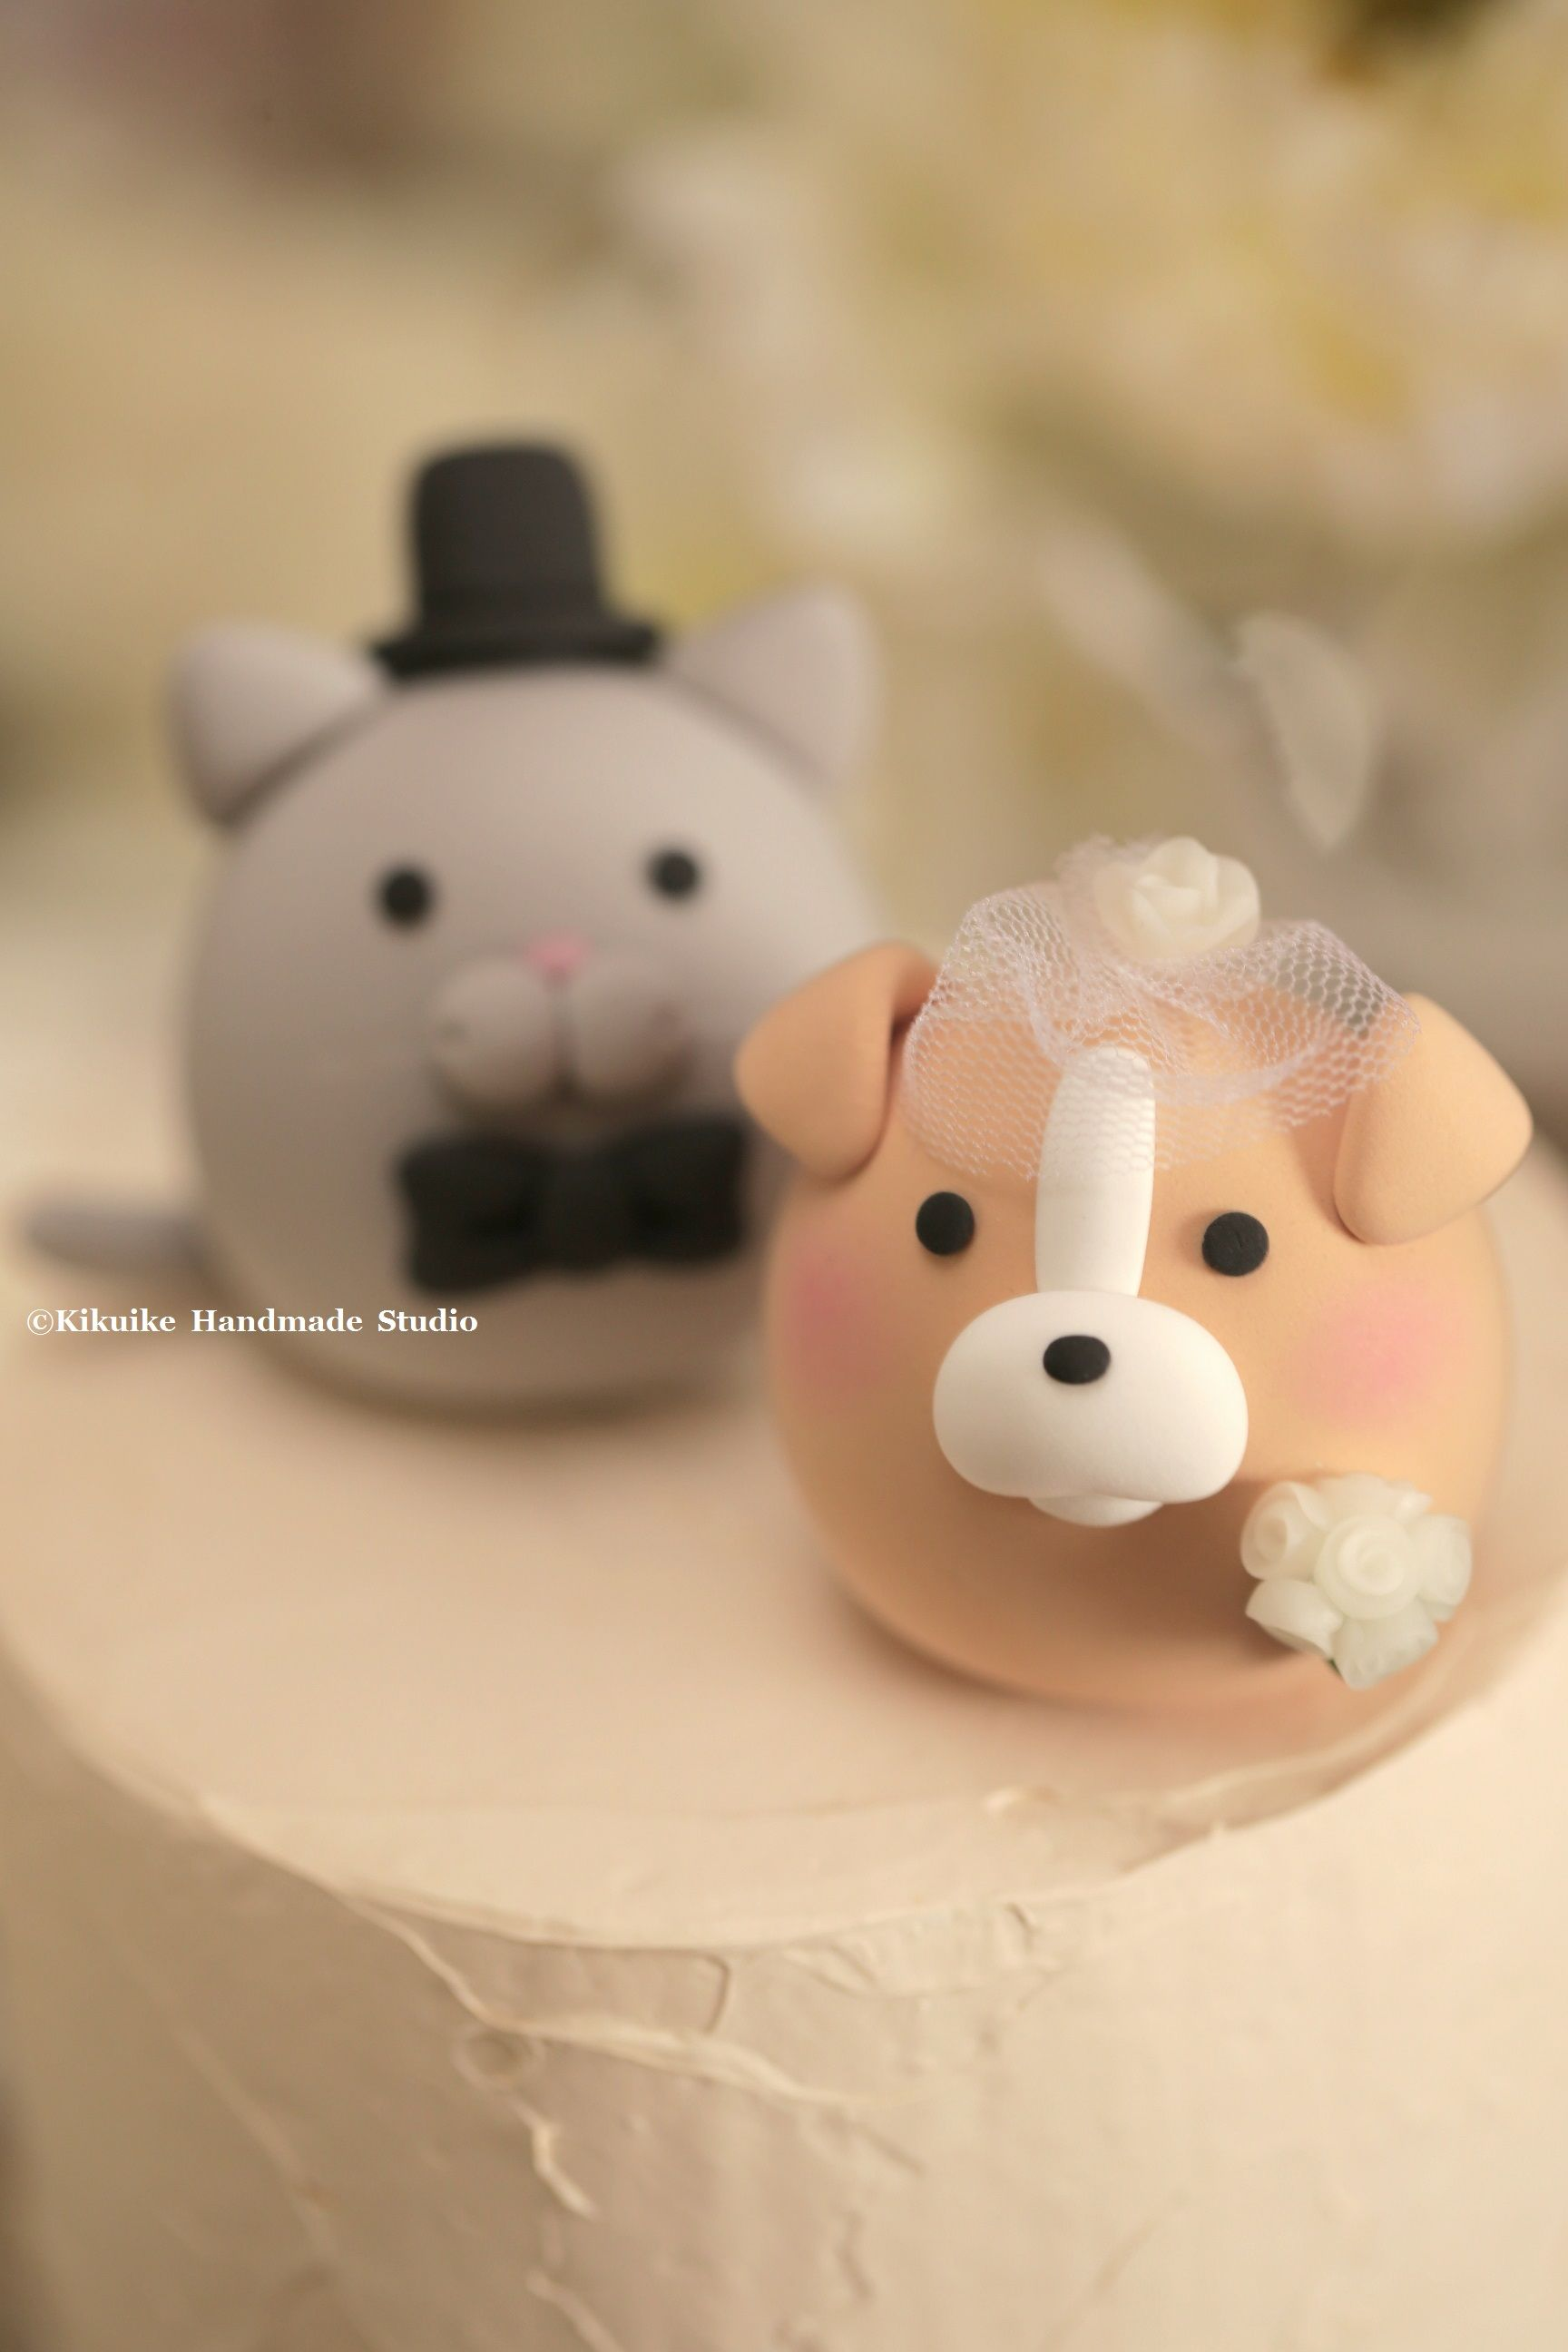 Bulldog and cat kitty and dog wedding cake topper mochiegg cake